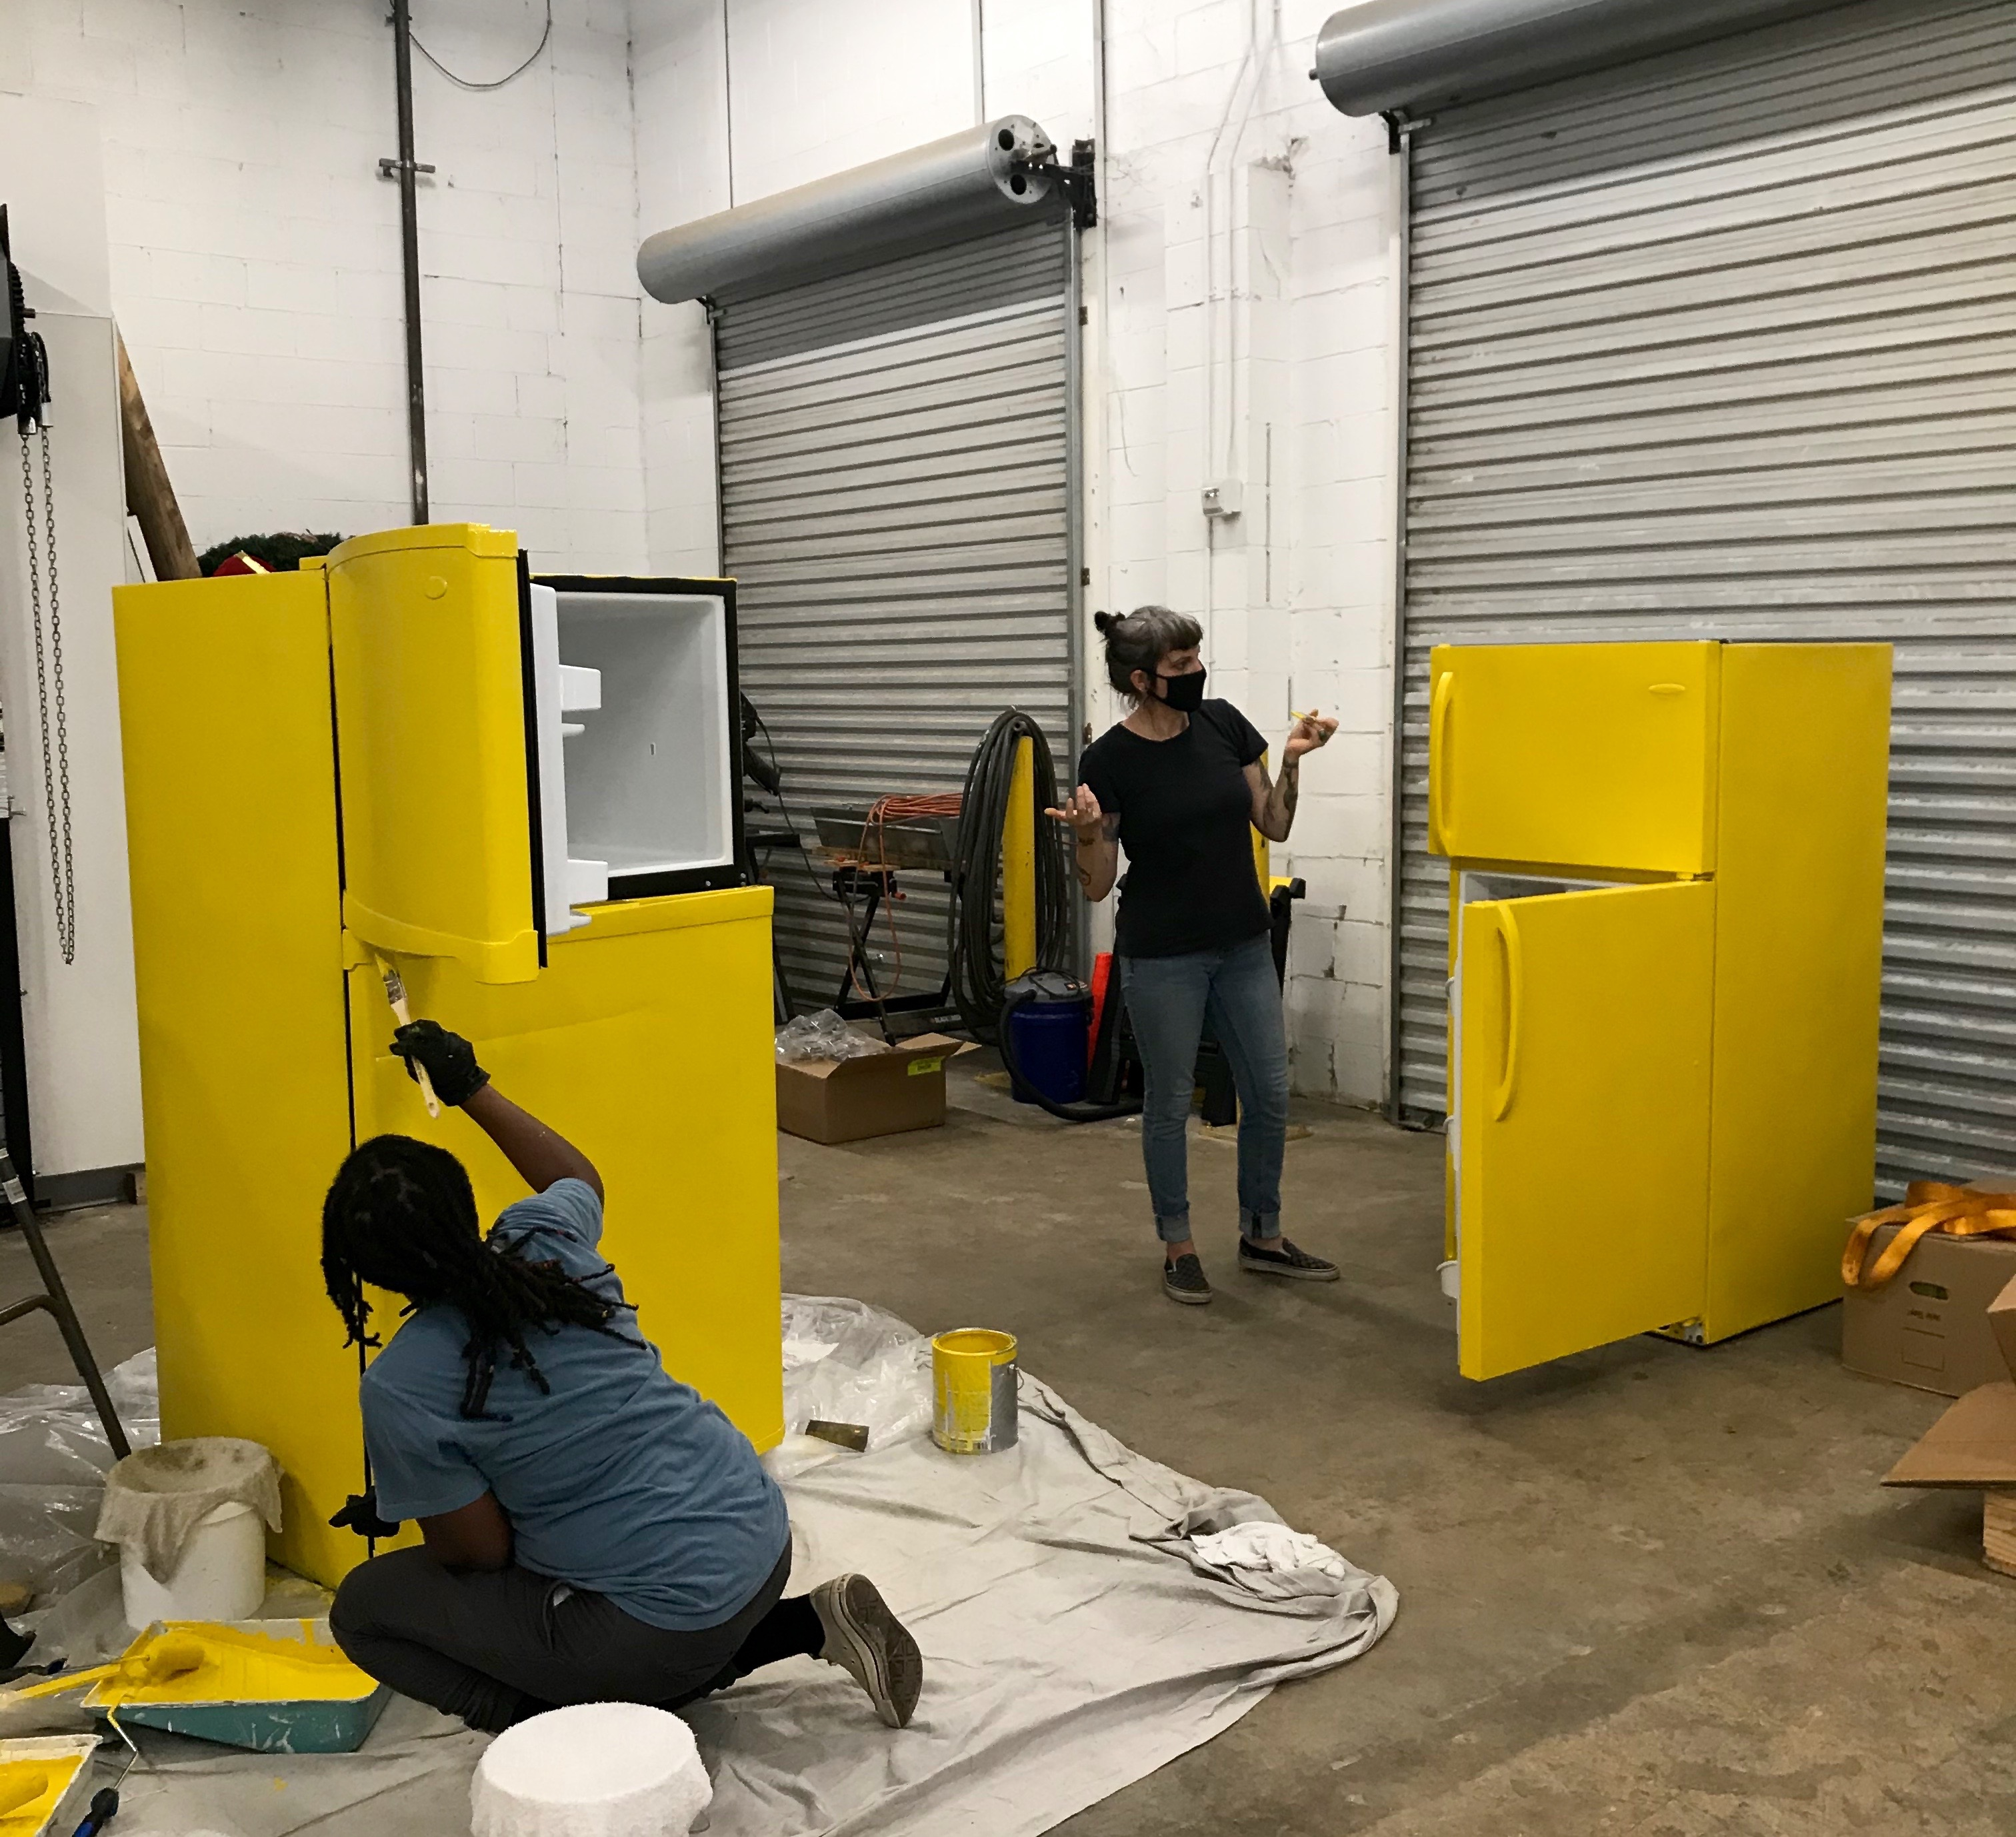 Two volunteers, one African American woman kneeling on the left and one white woman standing on the right and both in masks, painting two donated refrigerators yellow in a large white garage